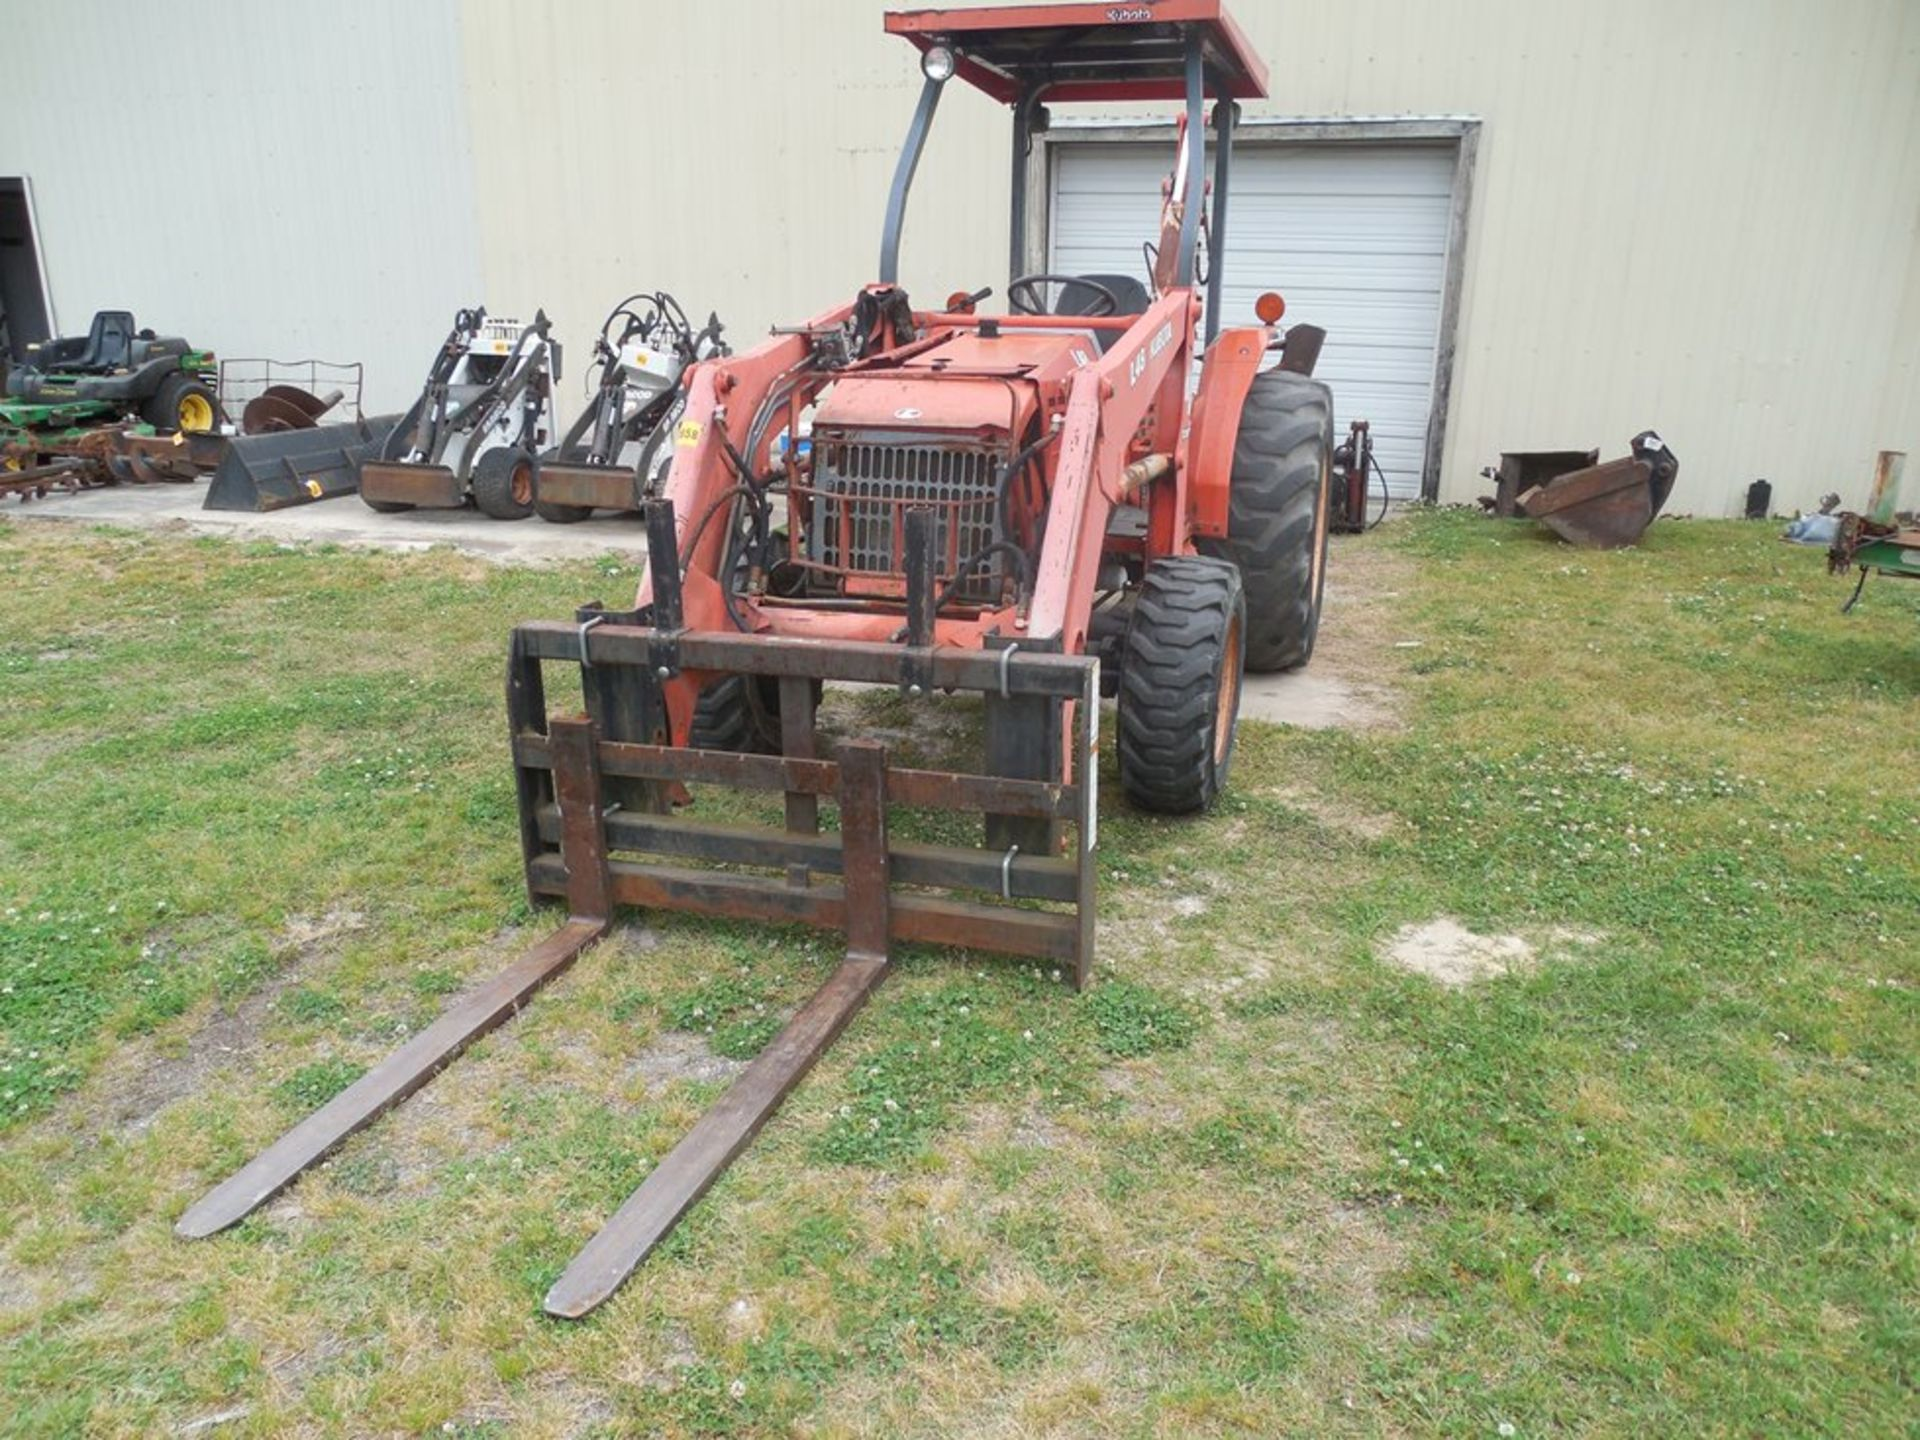 Kubota L48 Tractor Hydrostat trans. 4wd, forks and 4 in 1 bucket, backhoe attachement - Image 2 of 7